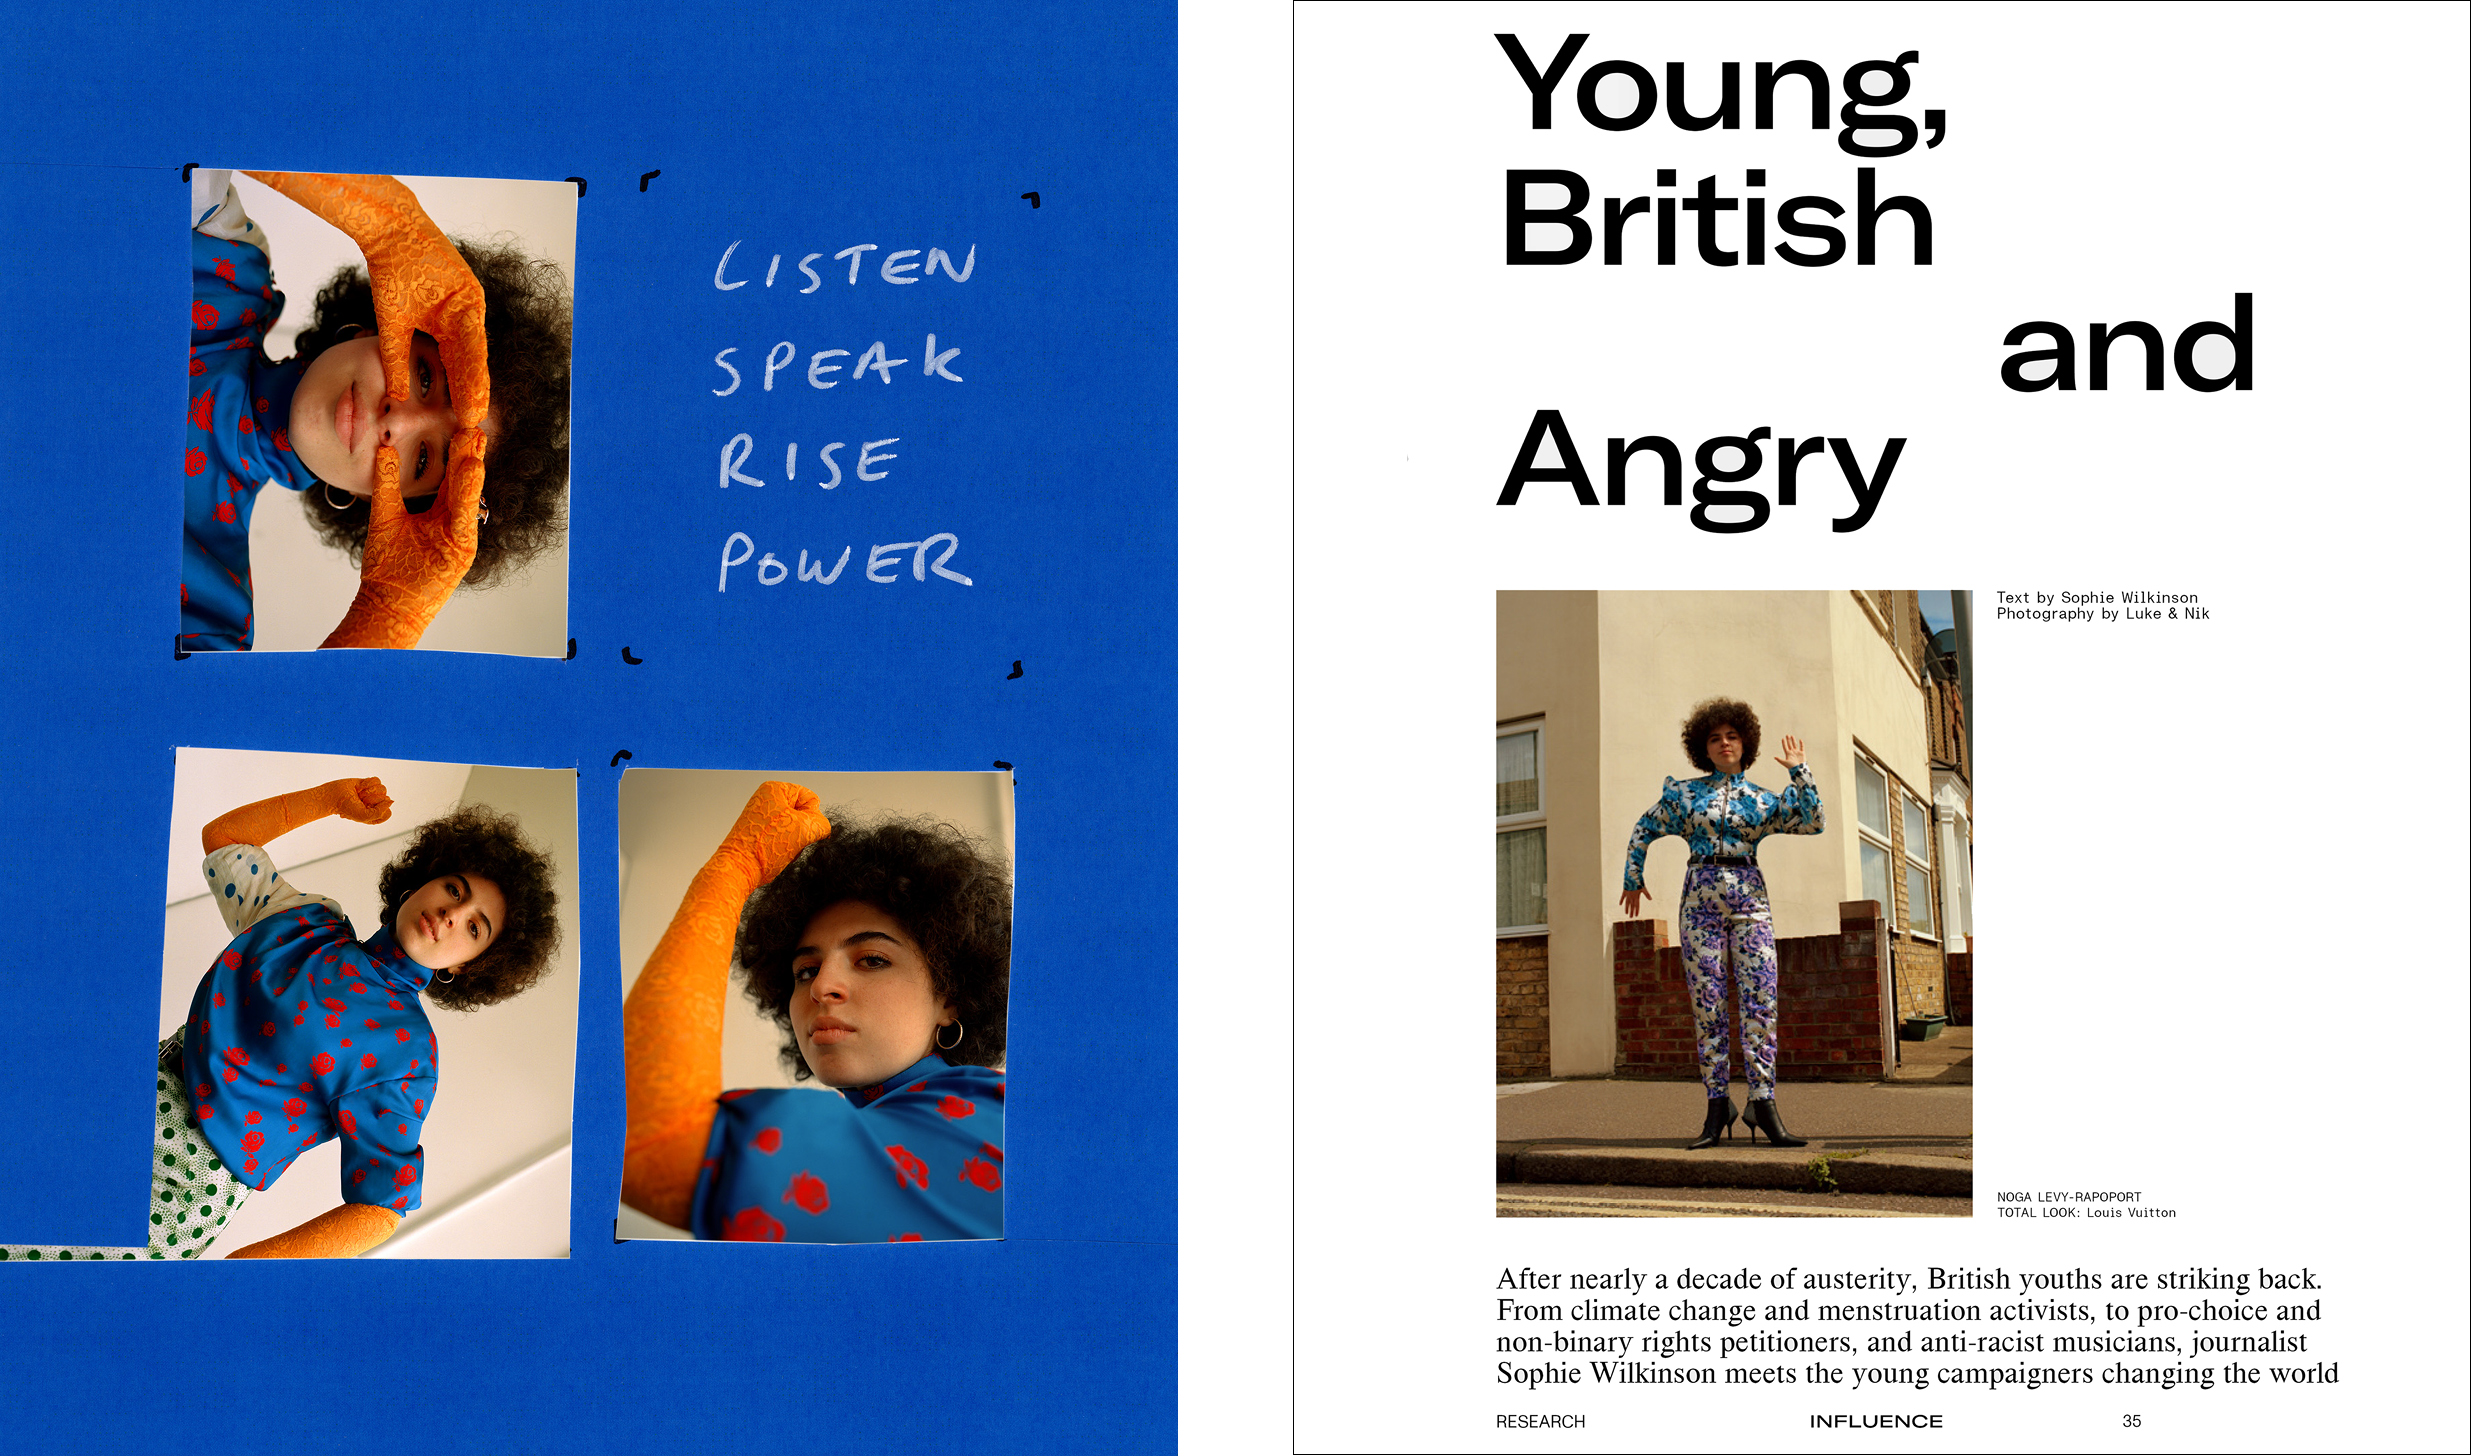 YOUNG BRITISH & ANGRY - SLEEK - ISSUE 62